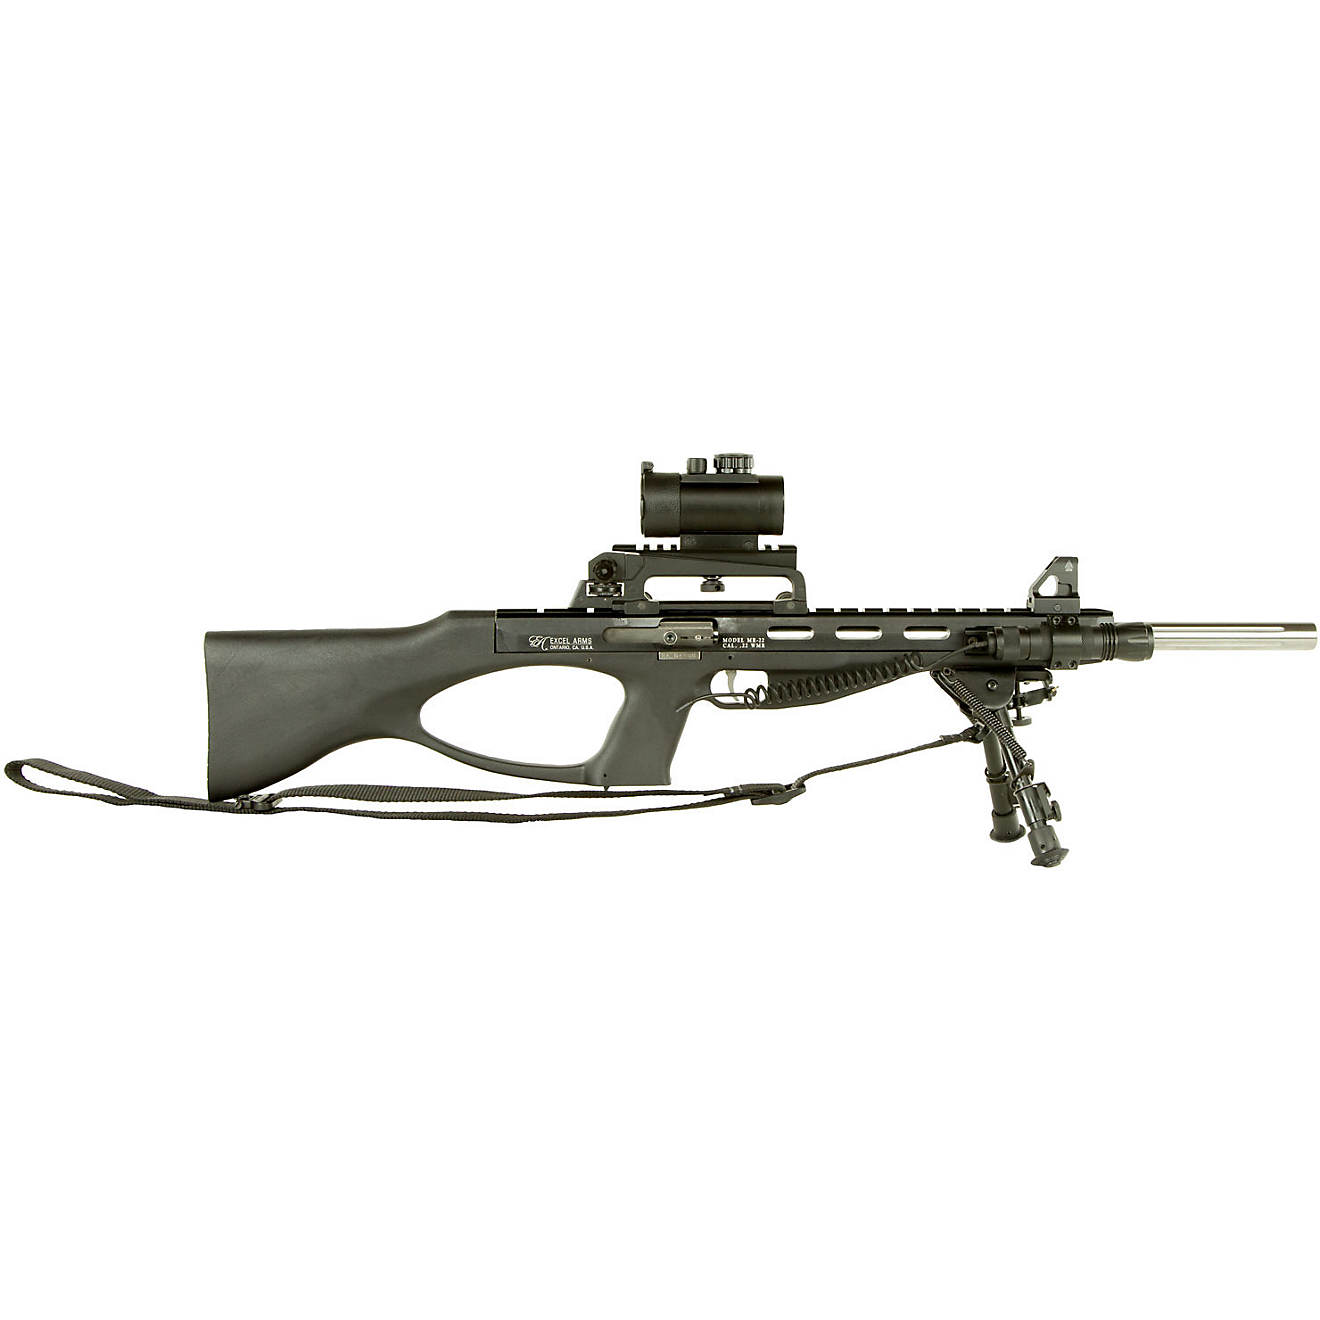 Excel Arms Accelerator Rifle MR-22 .22 Winchester Magnum Rimfire Semiautomatic Rifle